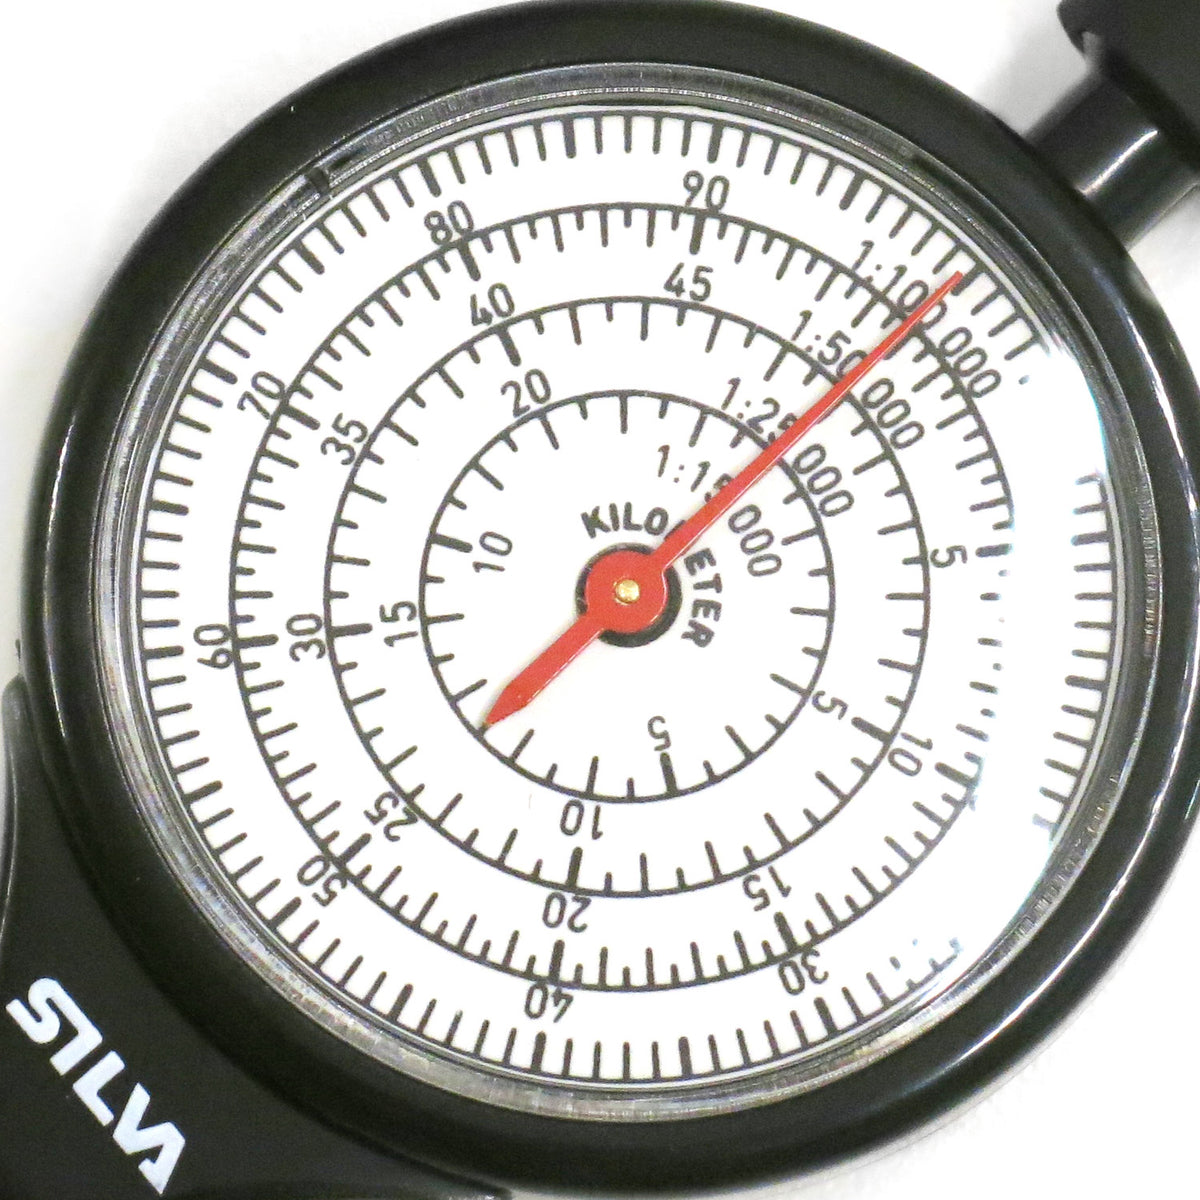 Close up view of the dial on the Silva Mechanical Map Measurer